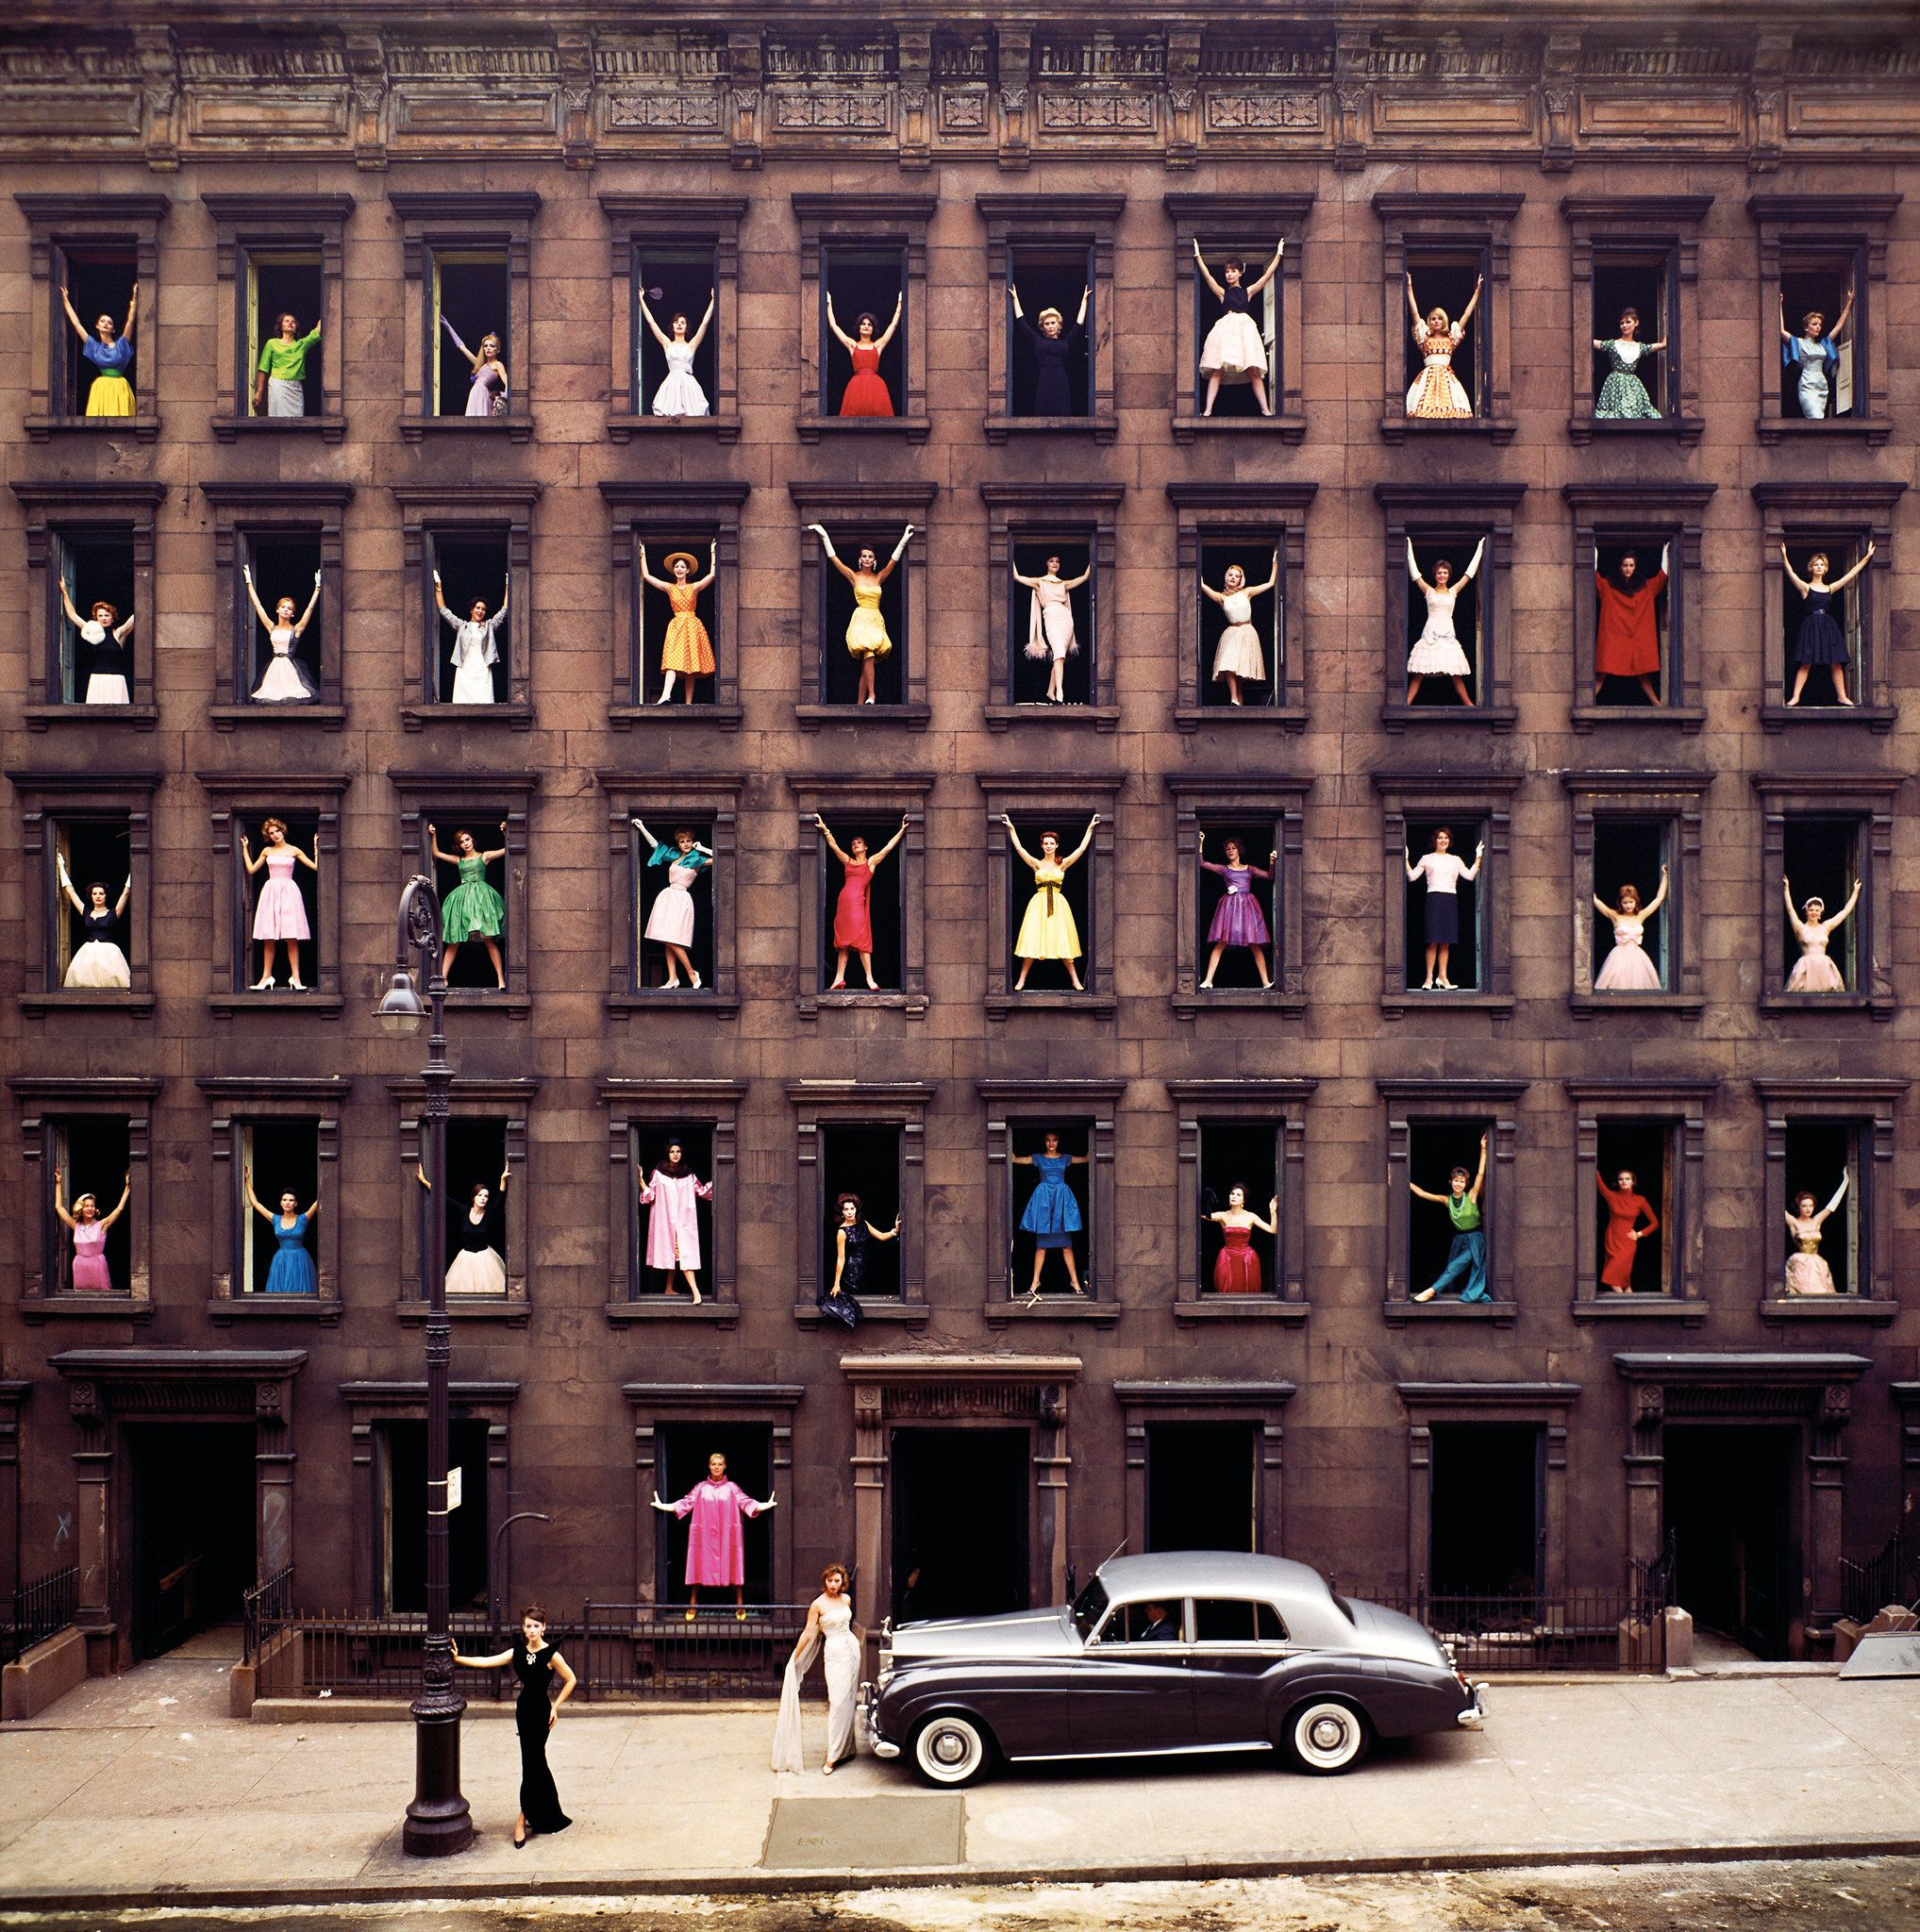 """Girls in the Windows, 1960.  From 'Girls in the Windows: And Other Stories by Ormond Gigli': """"...He was living on East 58th Street, in a brownstone that he bought with his earnings as a freelance photographer — take a deep breath, the dizziness will pass — and developers were razing the brownstones across the street to make room for a modern building. Mr. Gigli saw a grid of windows — 40 stages on which to mount a drama of creation and destruction in the big city...."""""""